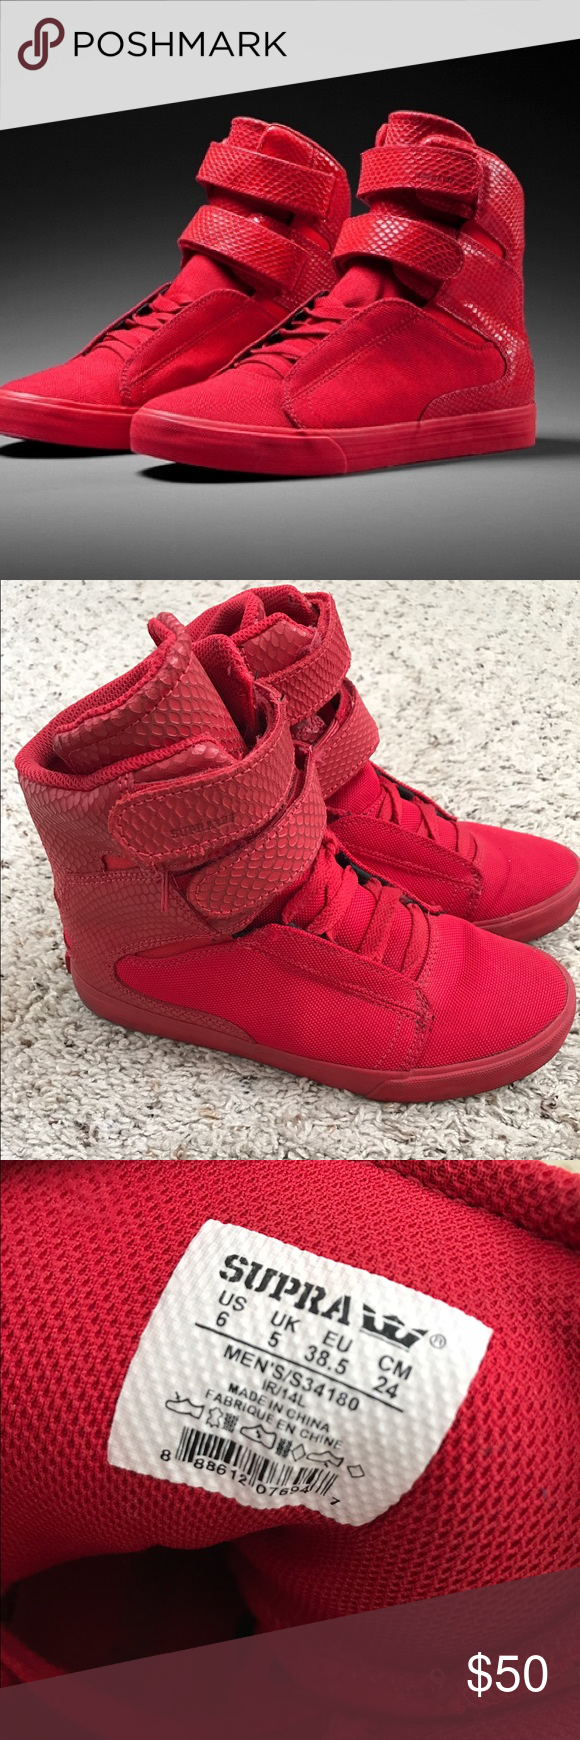 33b7ab255fff Red Supra Valentines Day Collection Embossed snakeskin and canvas high top  sneaker. Worn only a few times. Supra Shoes Sneakers